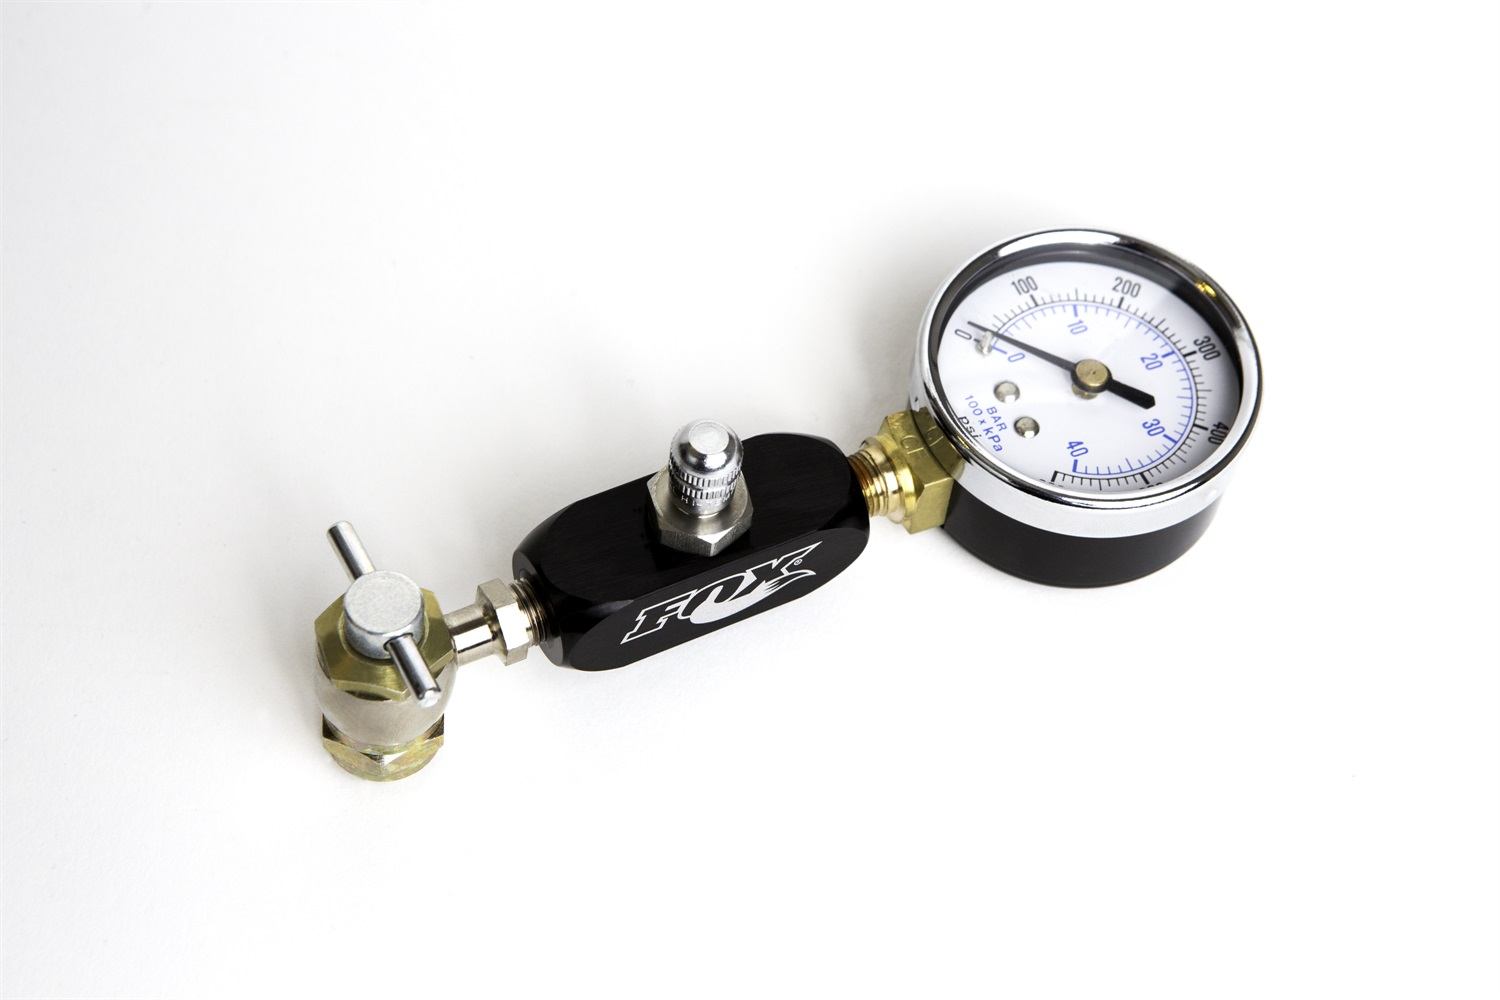 Fox Shocks 802-02-002-A Nitrogen Filler Gauge